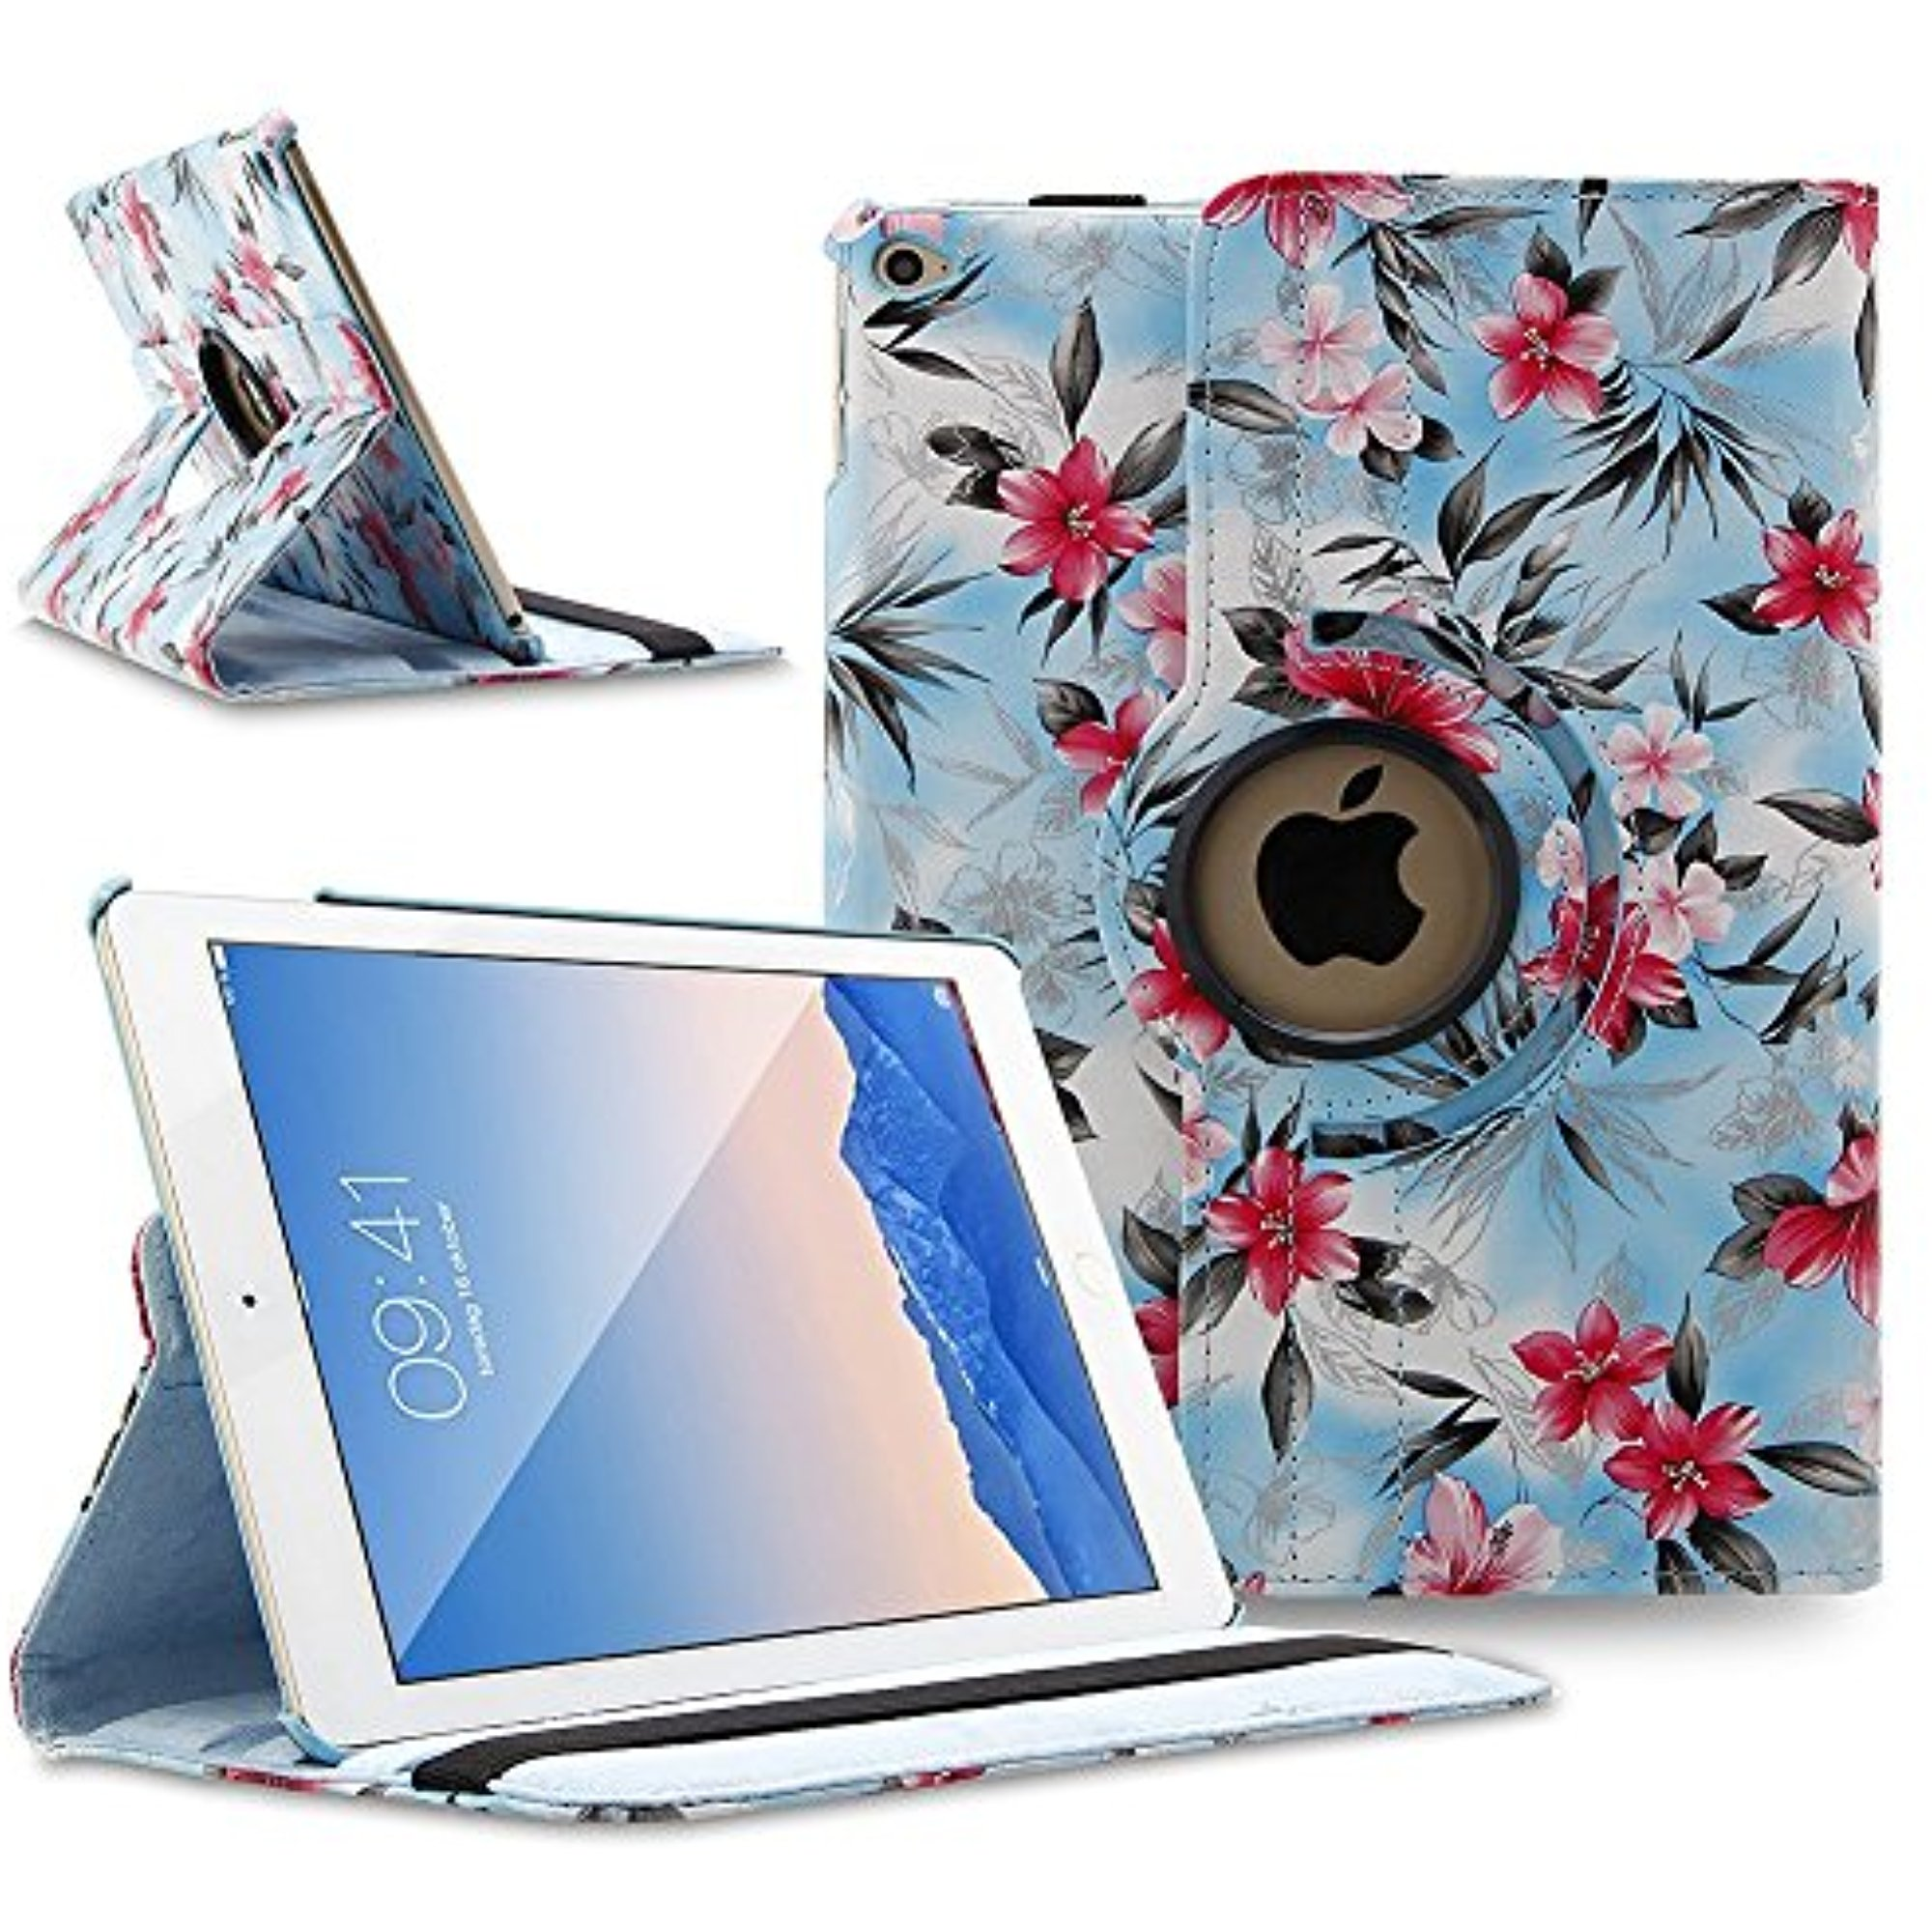 TOPCHANCES 360 Degrees Rotating PU Leather Case Smart Cover Stand Tablet Case Support Wake/Sleep Function w Stylus Pen for iPad Air 2 iPad 6 (Blue Camellia)